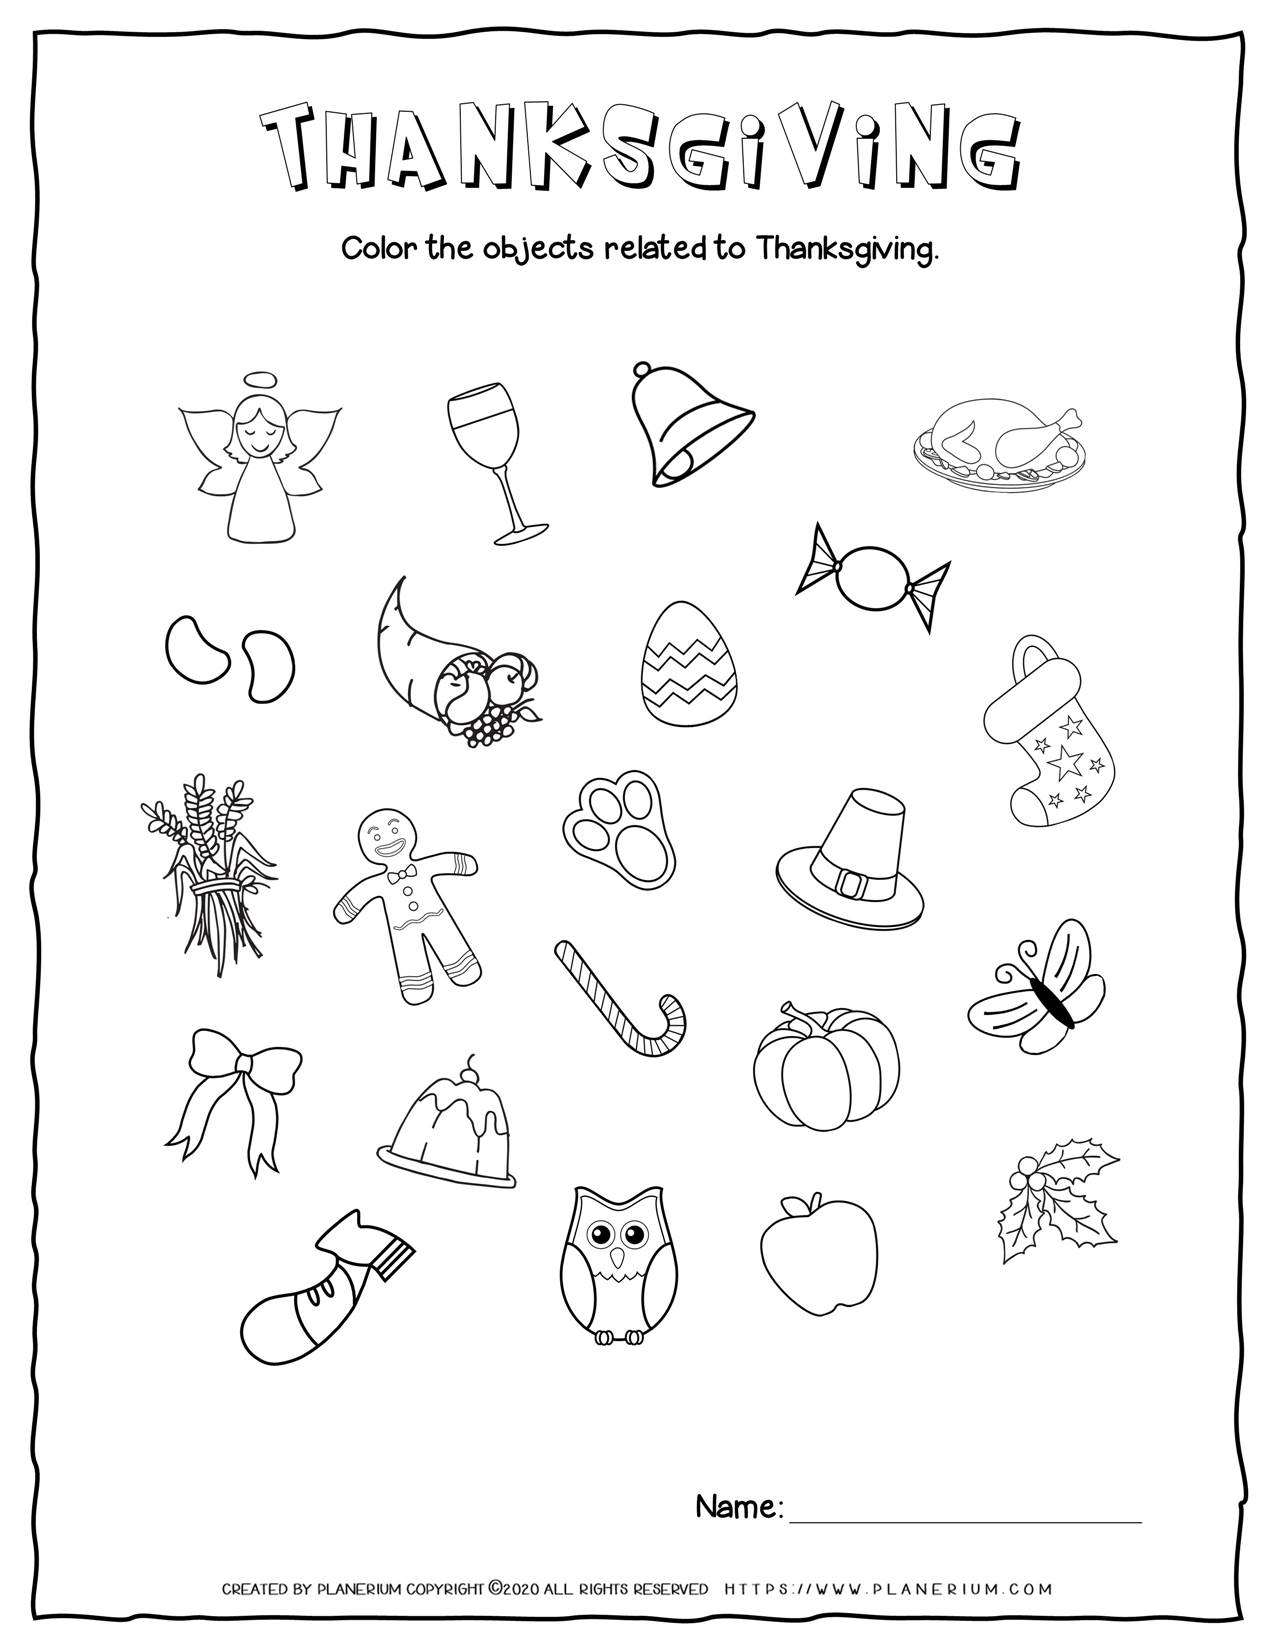 Related Objects - Thanksgiving Worksheet | Planerium